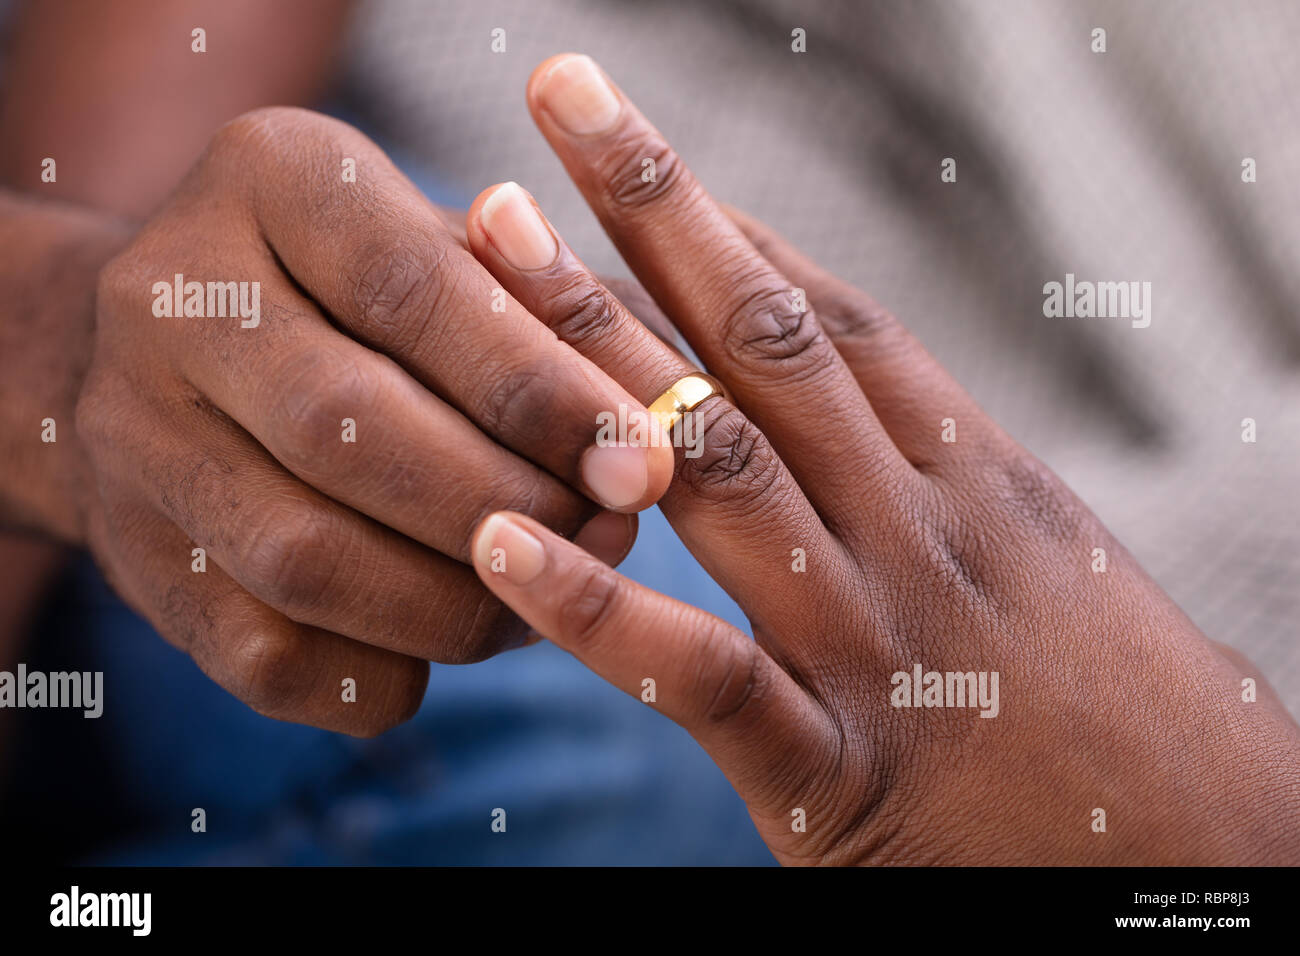 Close-up Of Man's Hand Putting Golden Engagement Ring On Woman's Finger - Stock Image